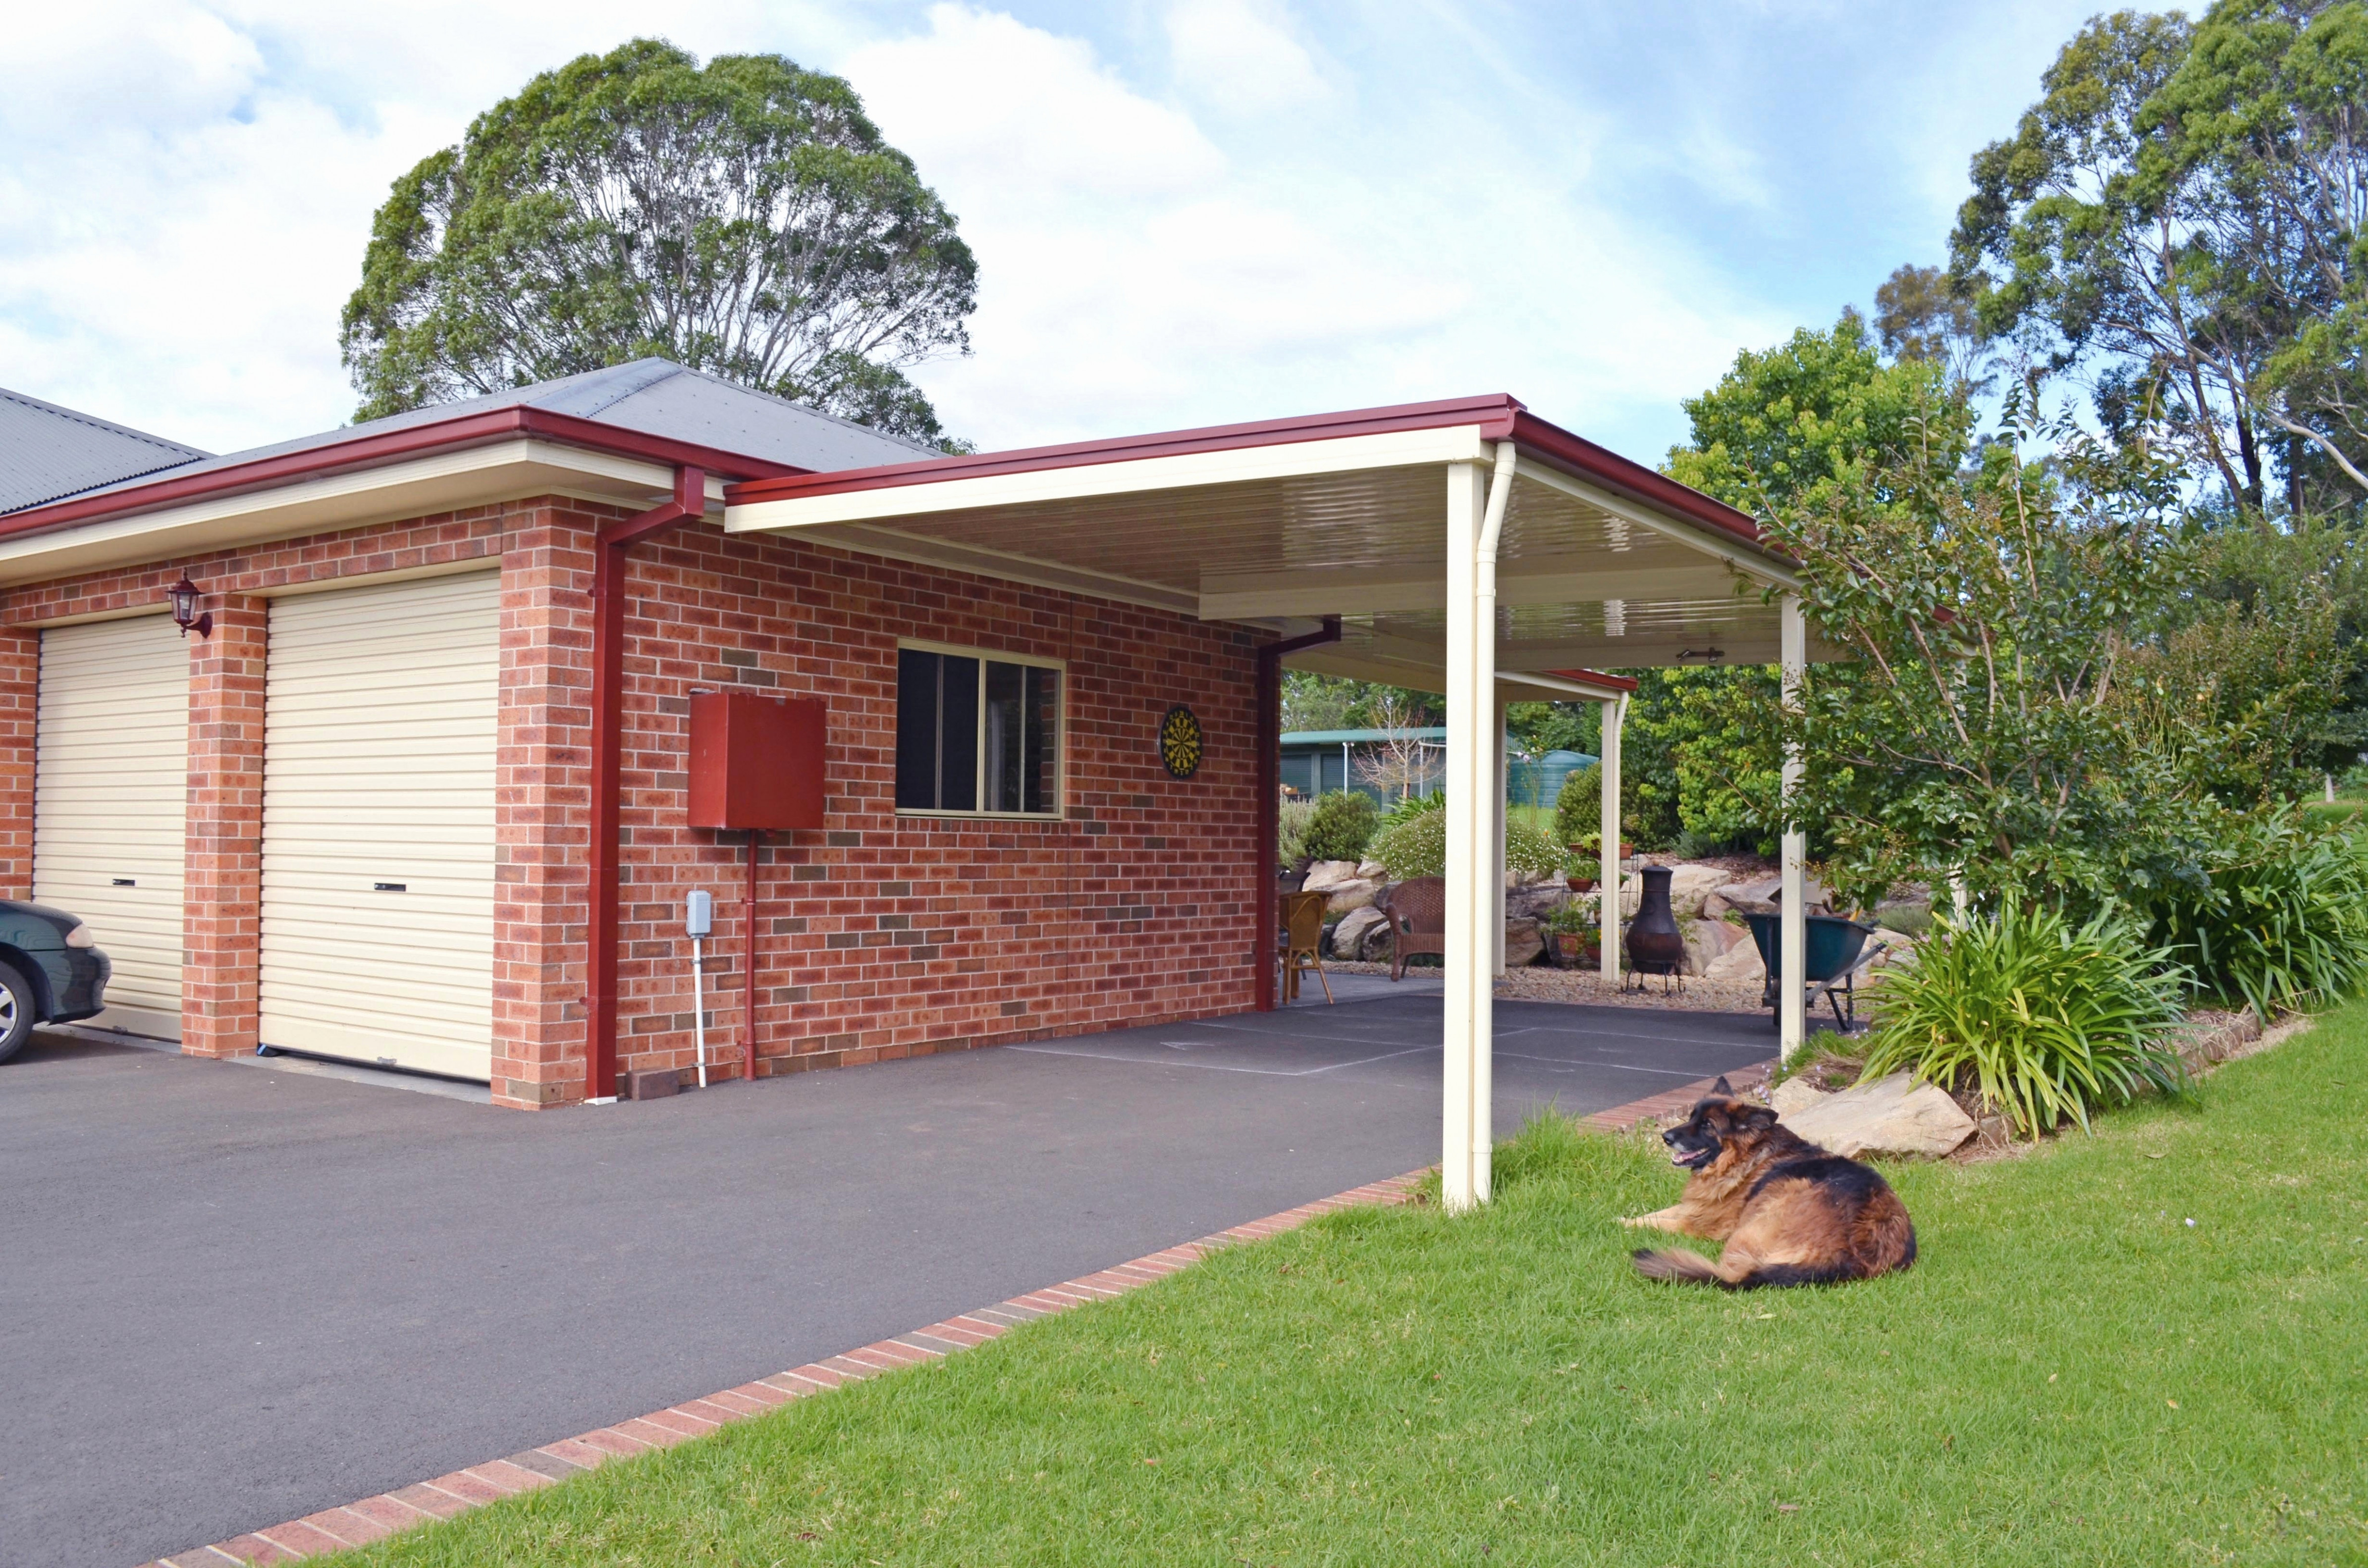 Awesome Carport Attached To House Plans Ideas Open Modern ..